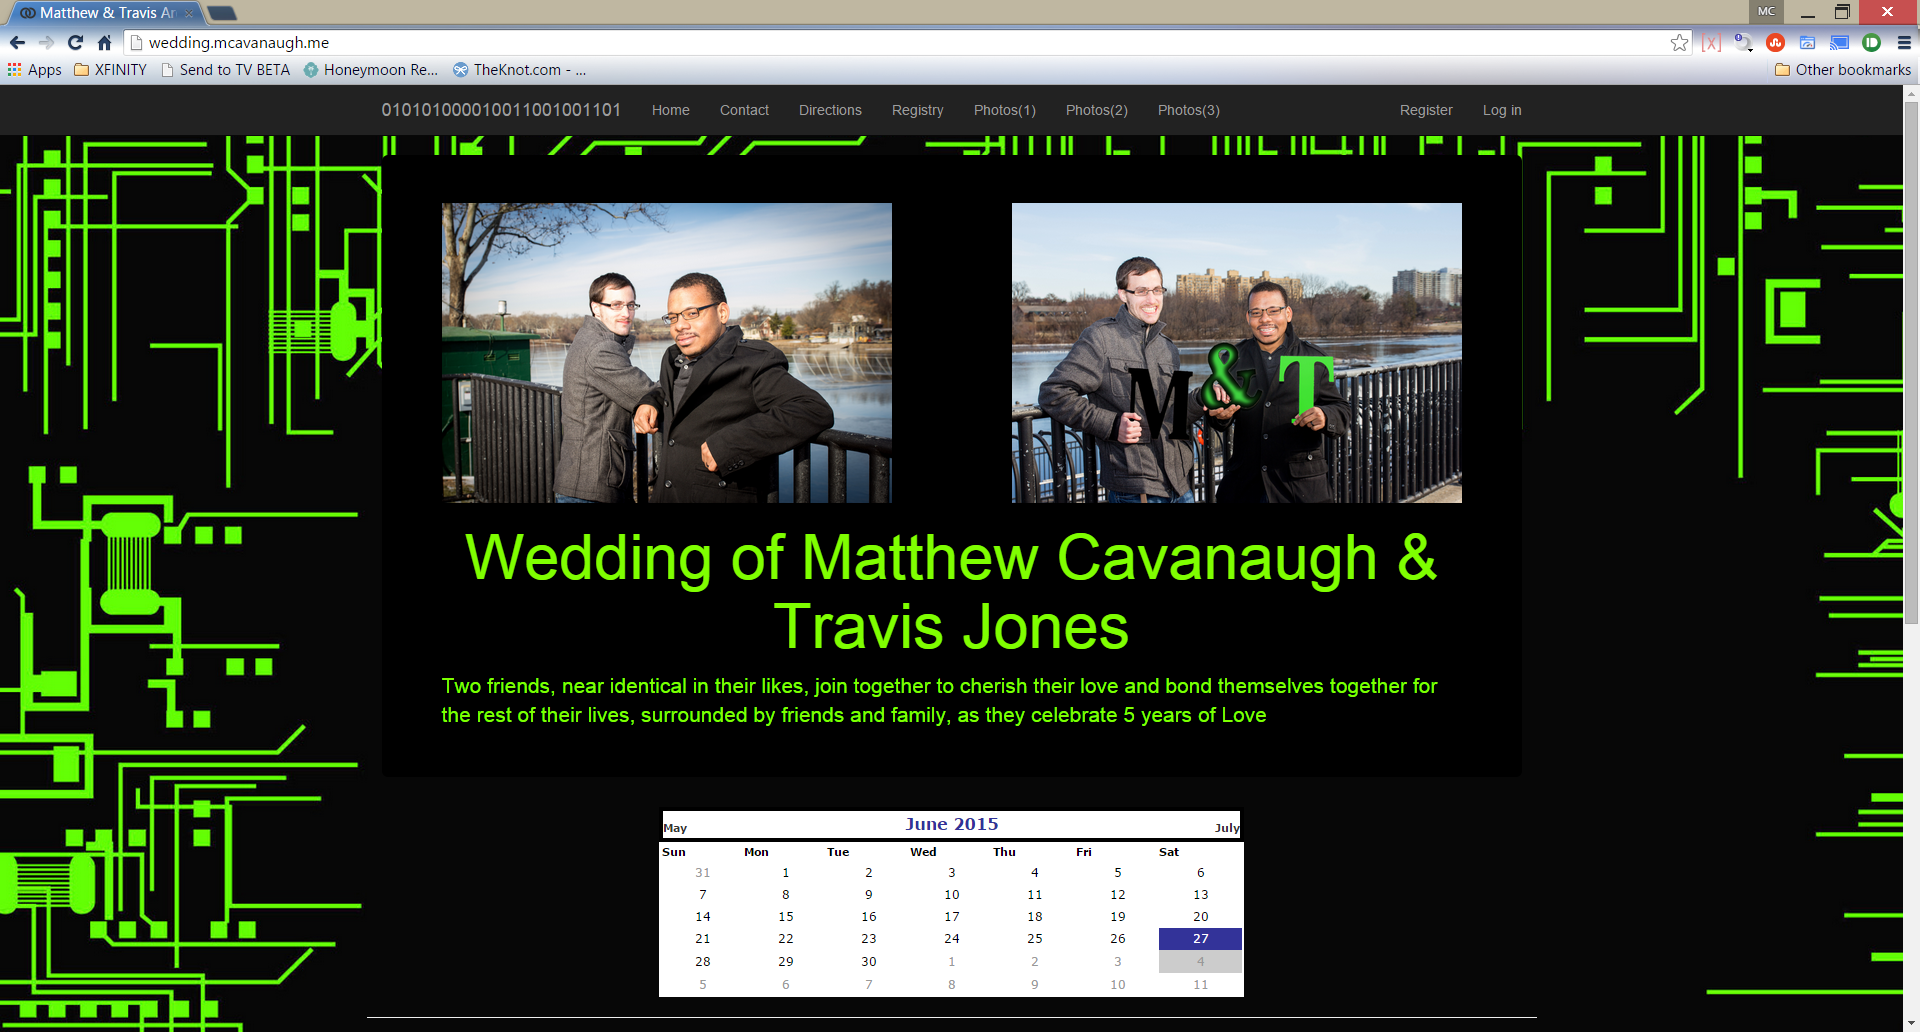 Wedding.MCavanaugh.ME screenshot